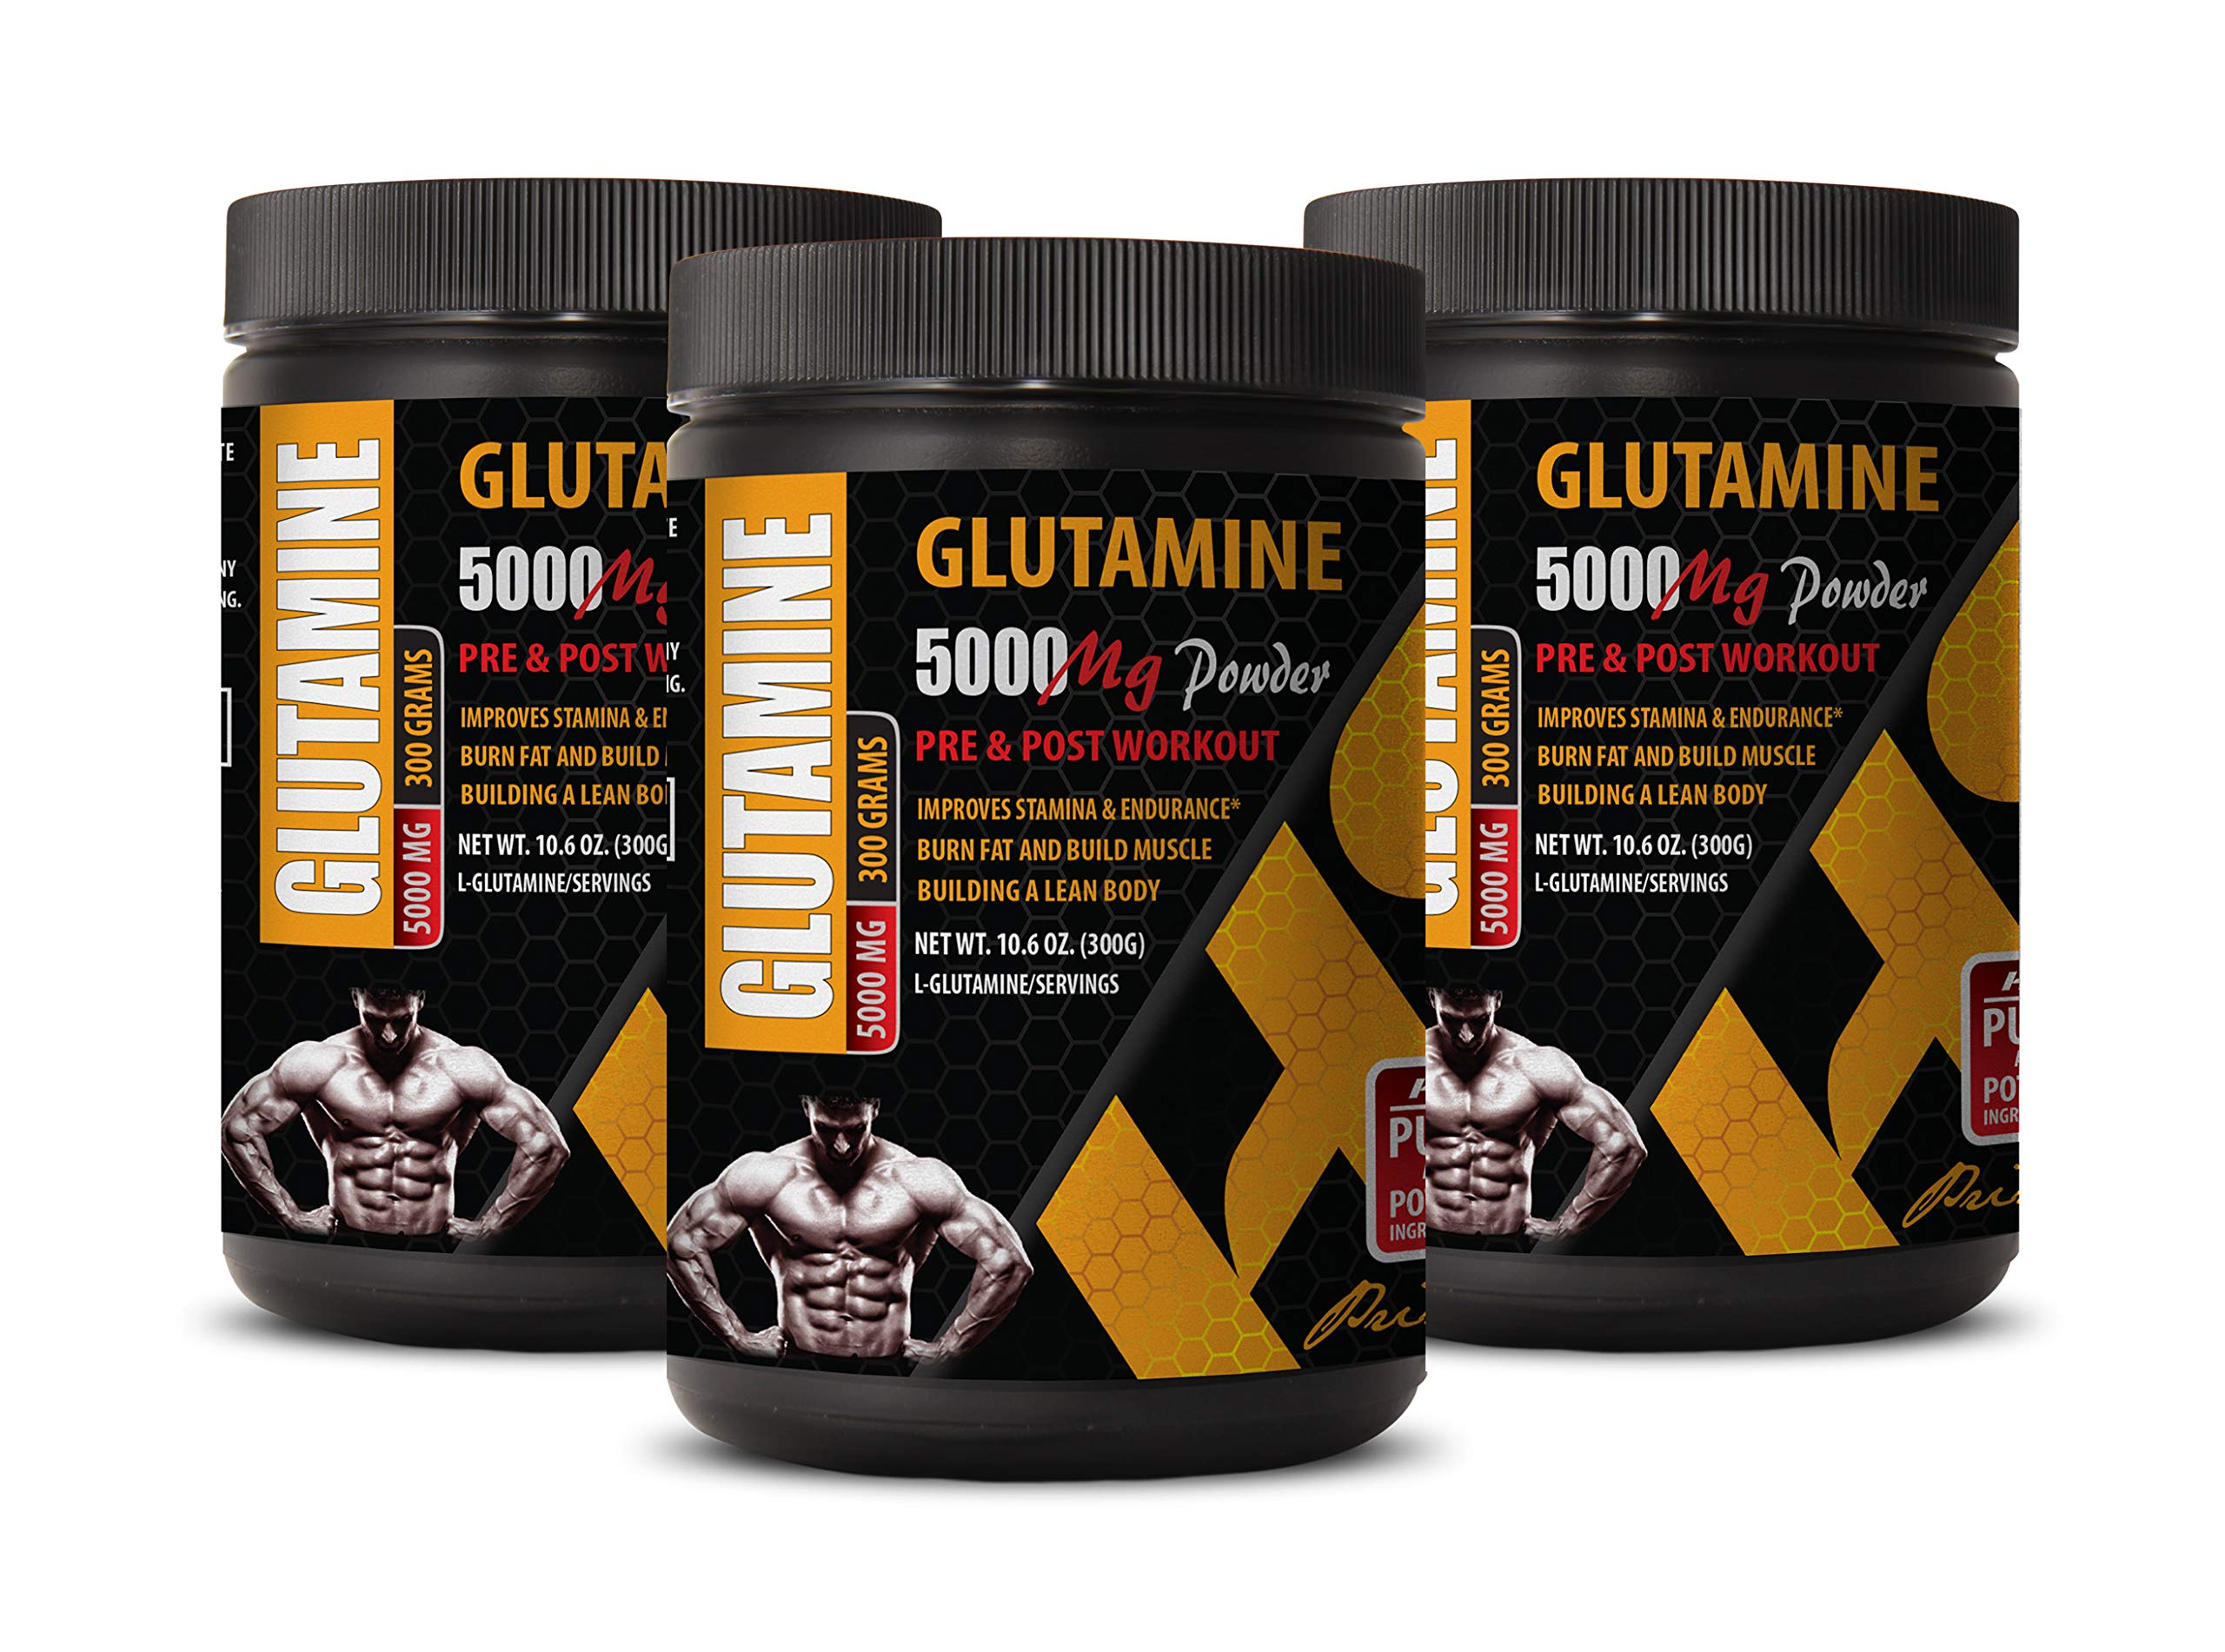 Muscle Pump pre Workout - GLUTAMINE Powder 5000MG - PRE and Post Workout - glutamine Supplements Powder - 3 Cans 900 Grams